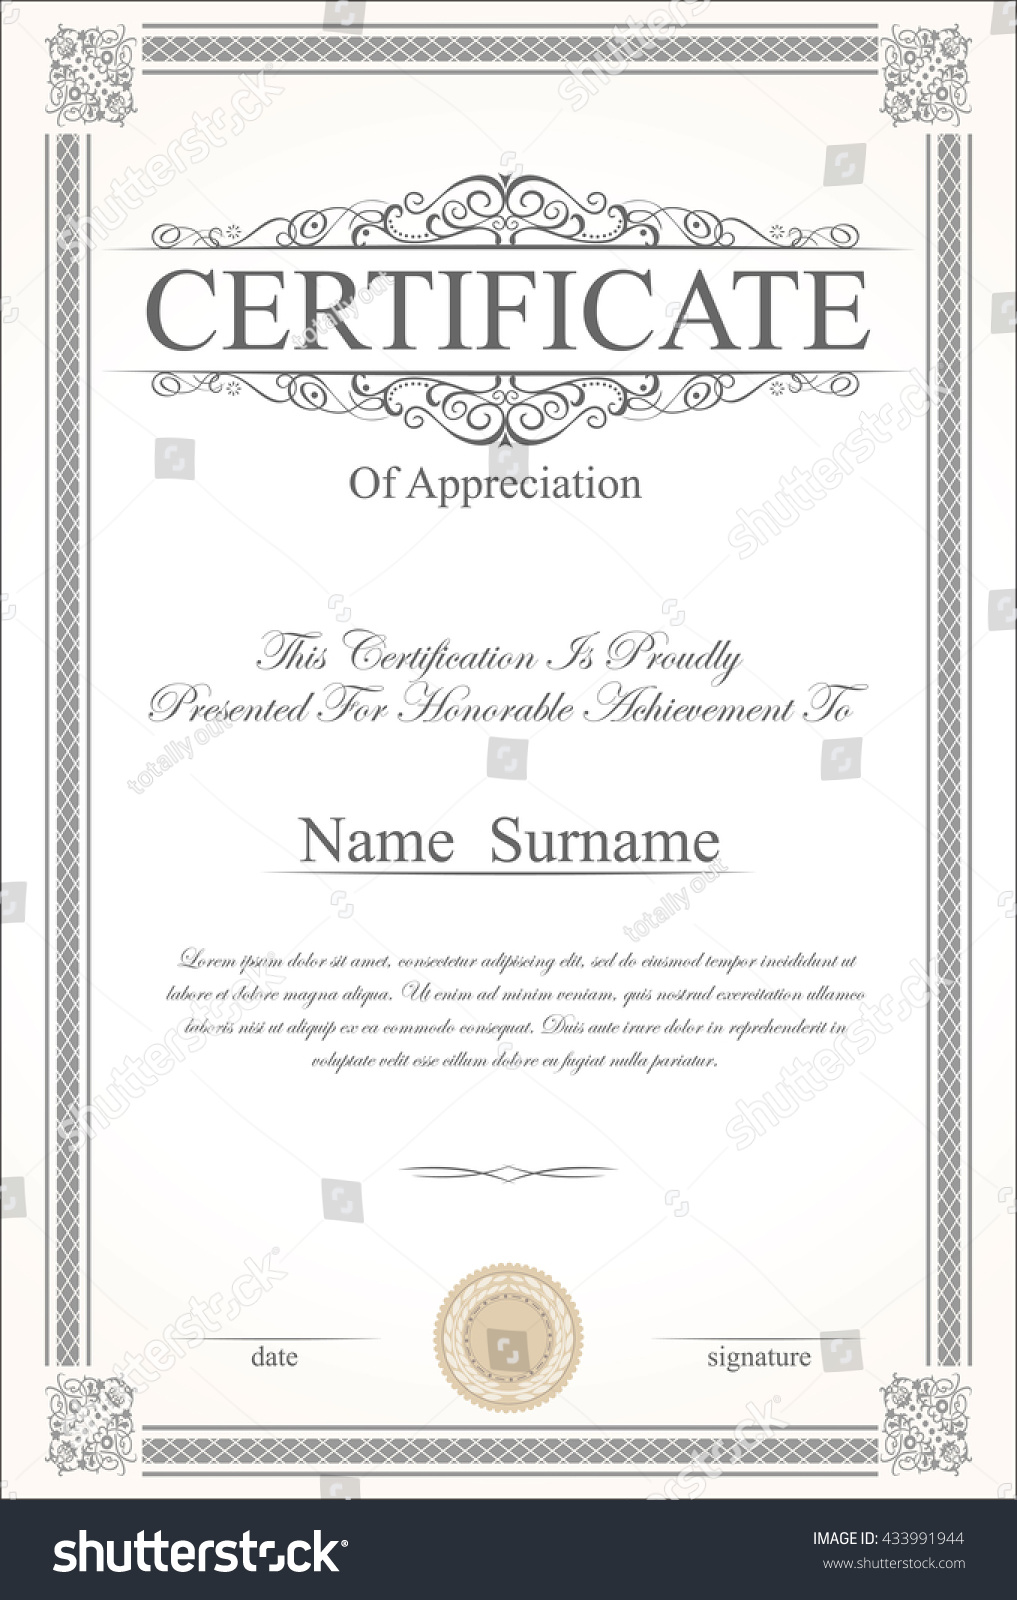 Seal certificate of appreciation formatted social worker resume seal certificate of appreciation formatted seal certificate of appreciation formatted yadclub Images